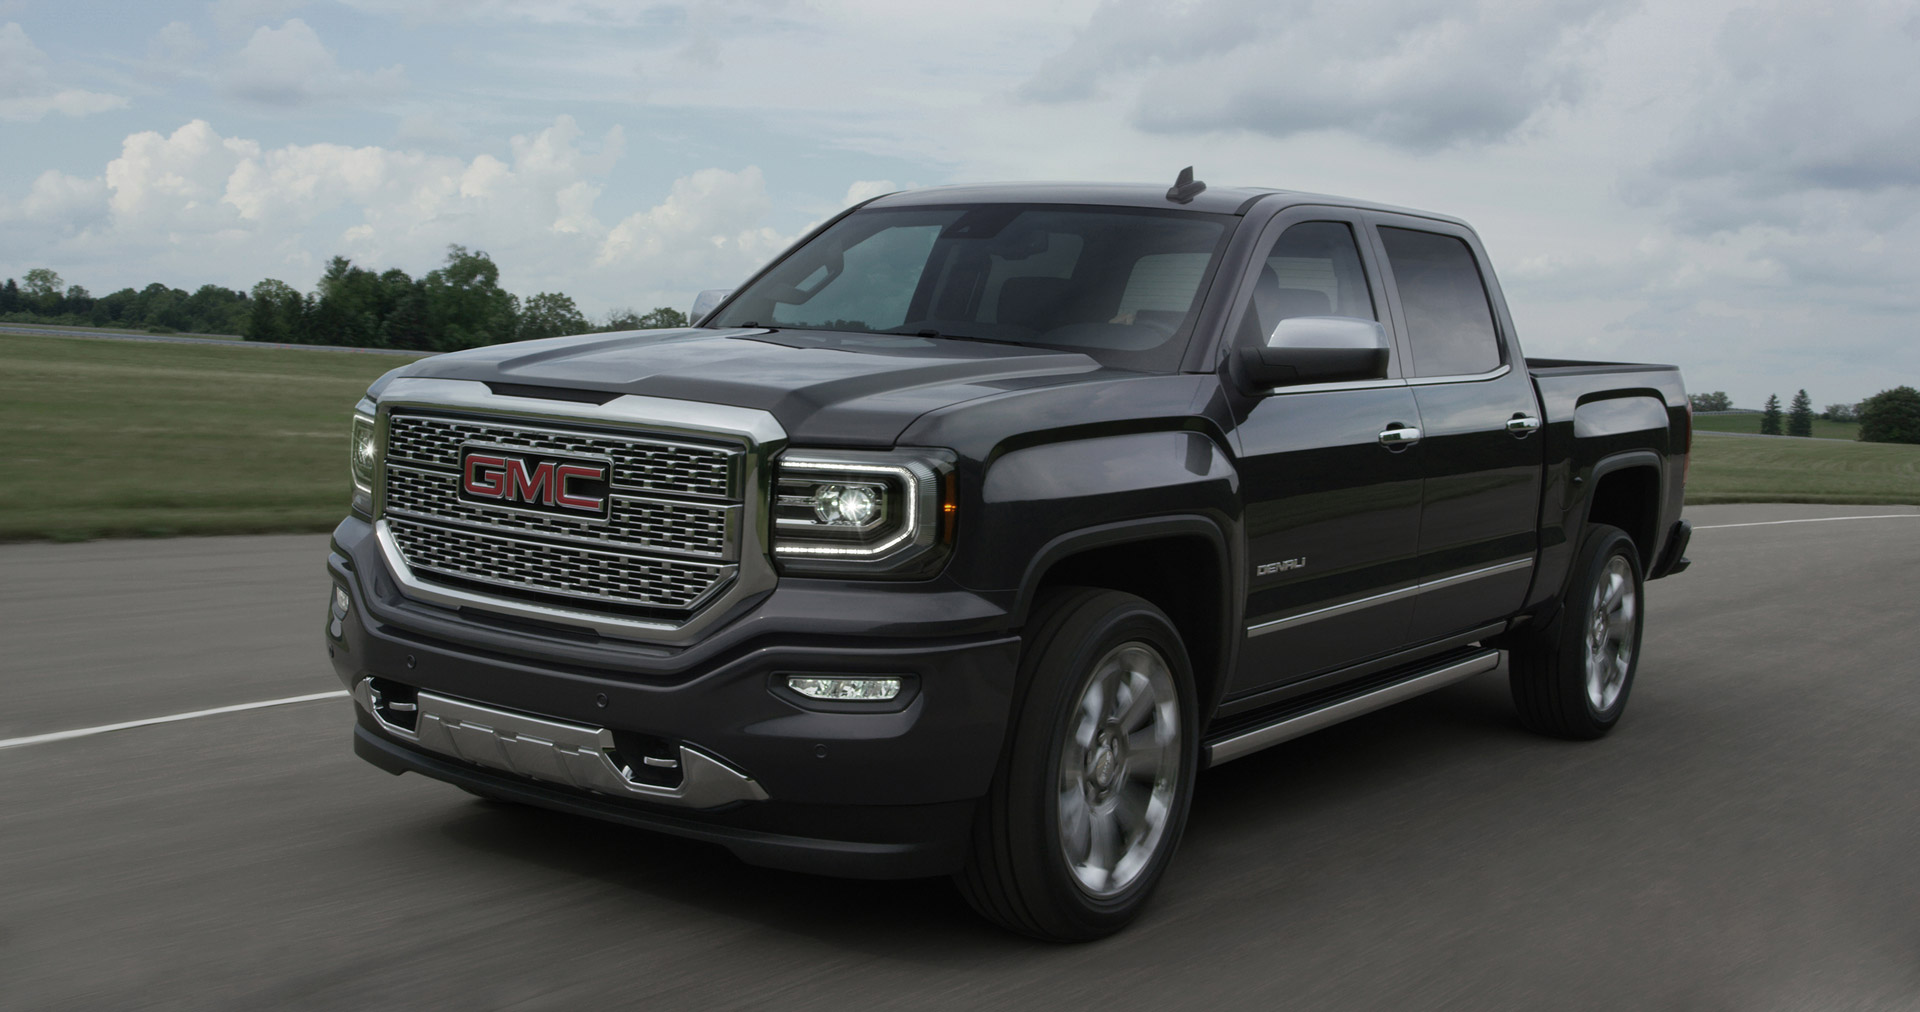 2016 GMC Sierra 1500 Gets A Few Visual Tweaks: Video